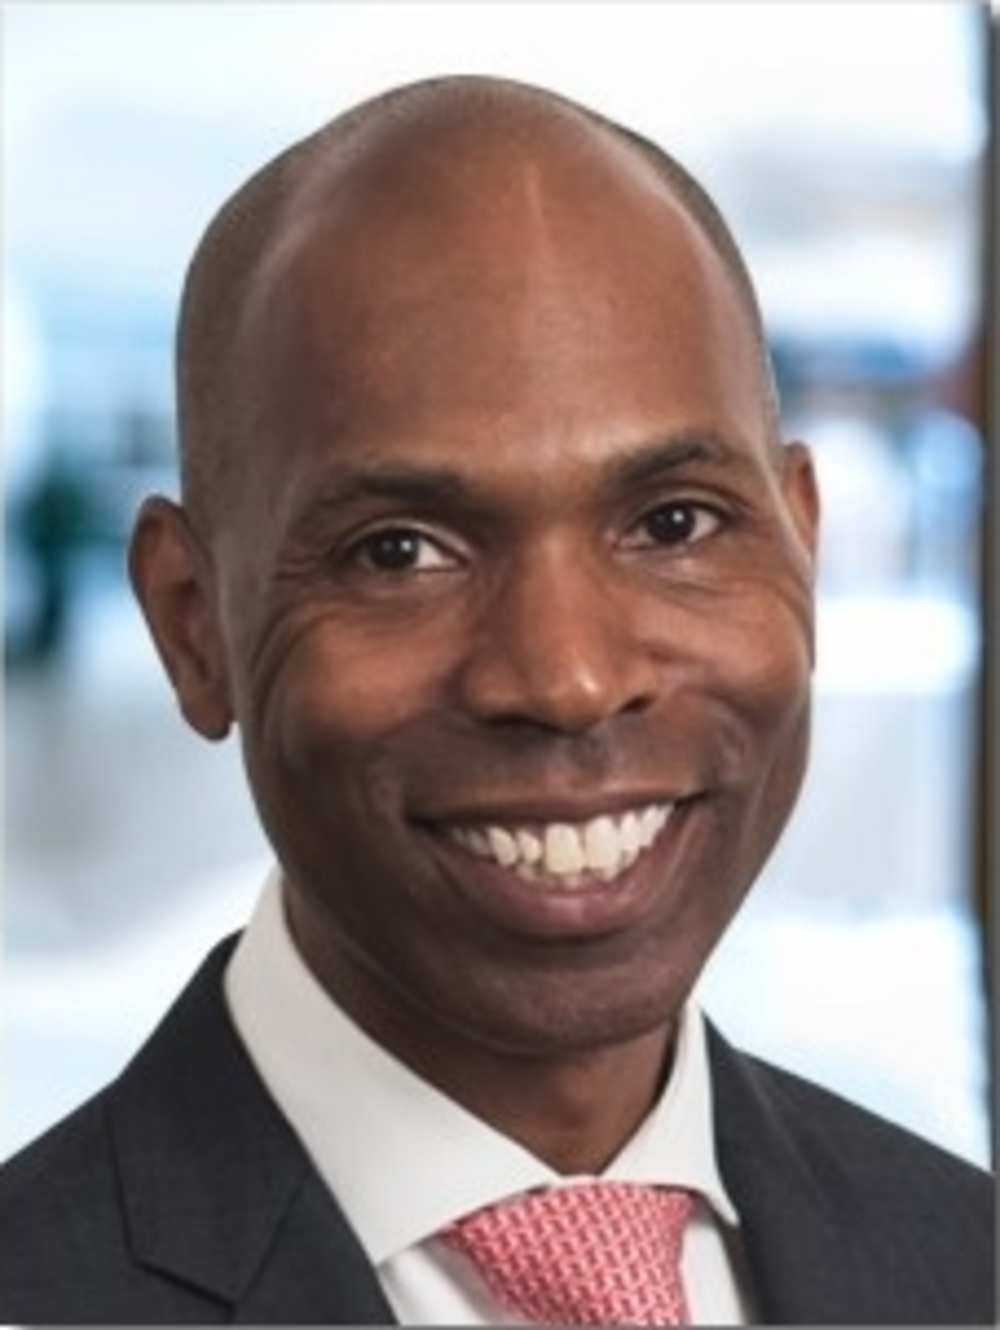 Rodney Jones Tyson '98, Chief Risk Officer of Baird